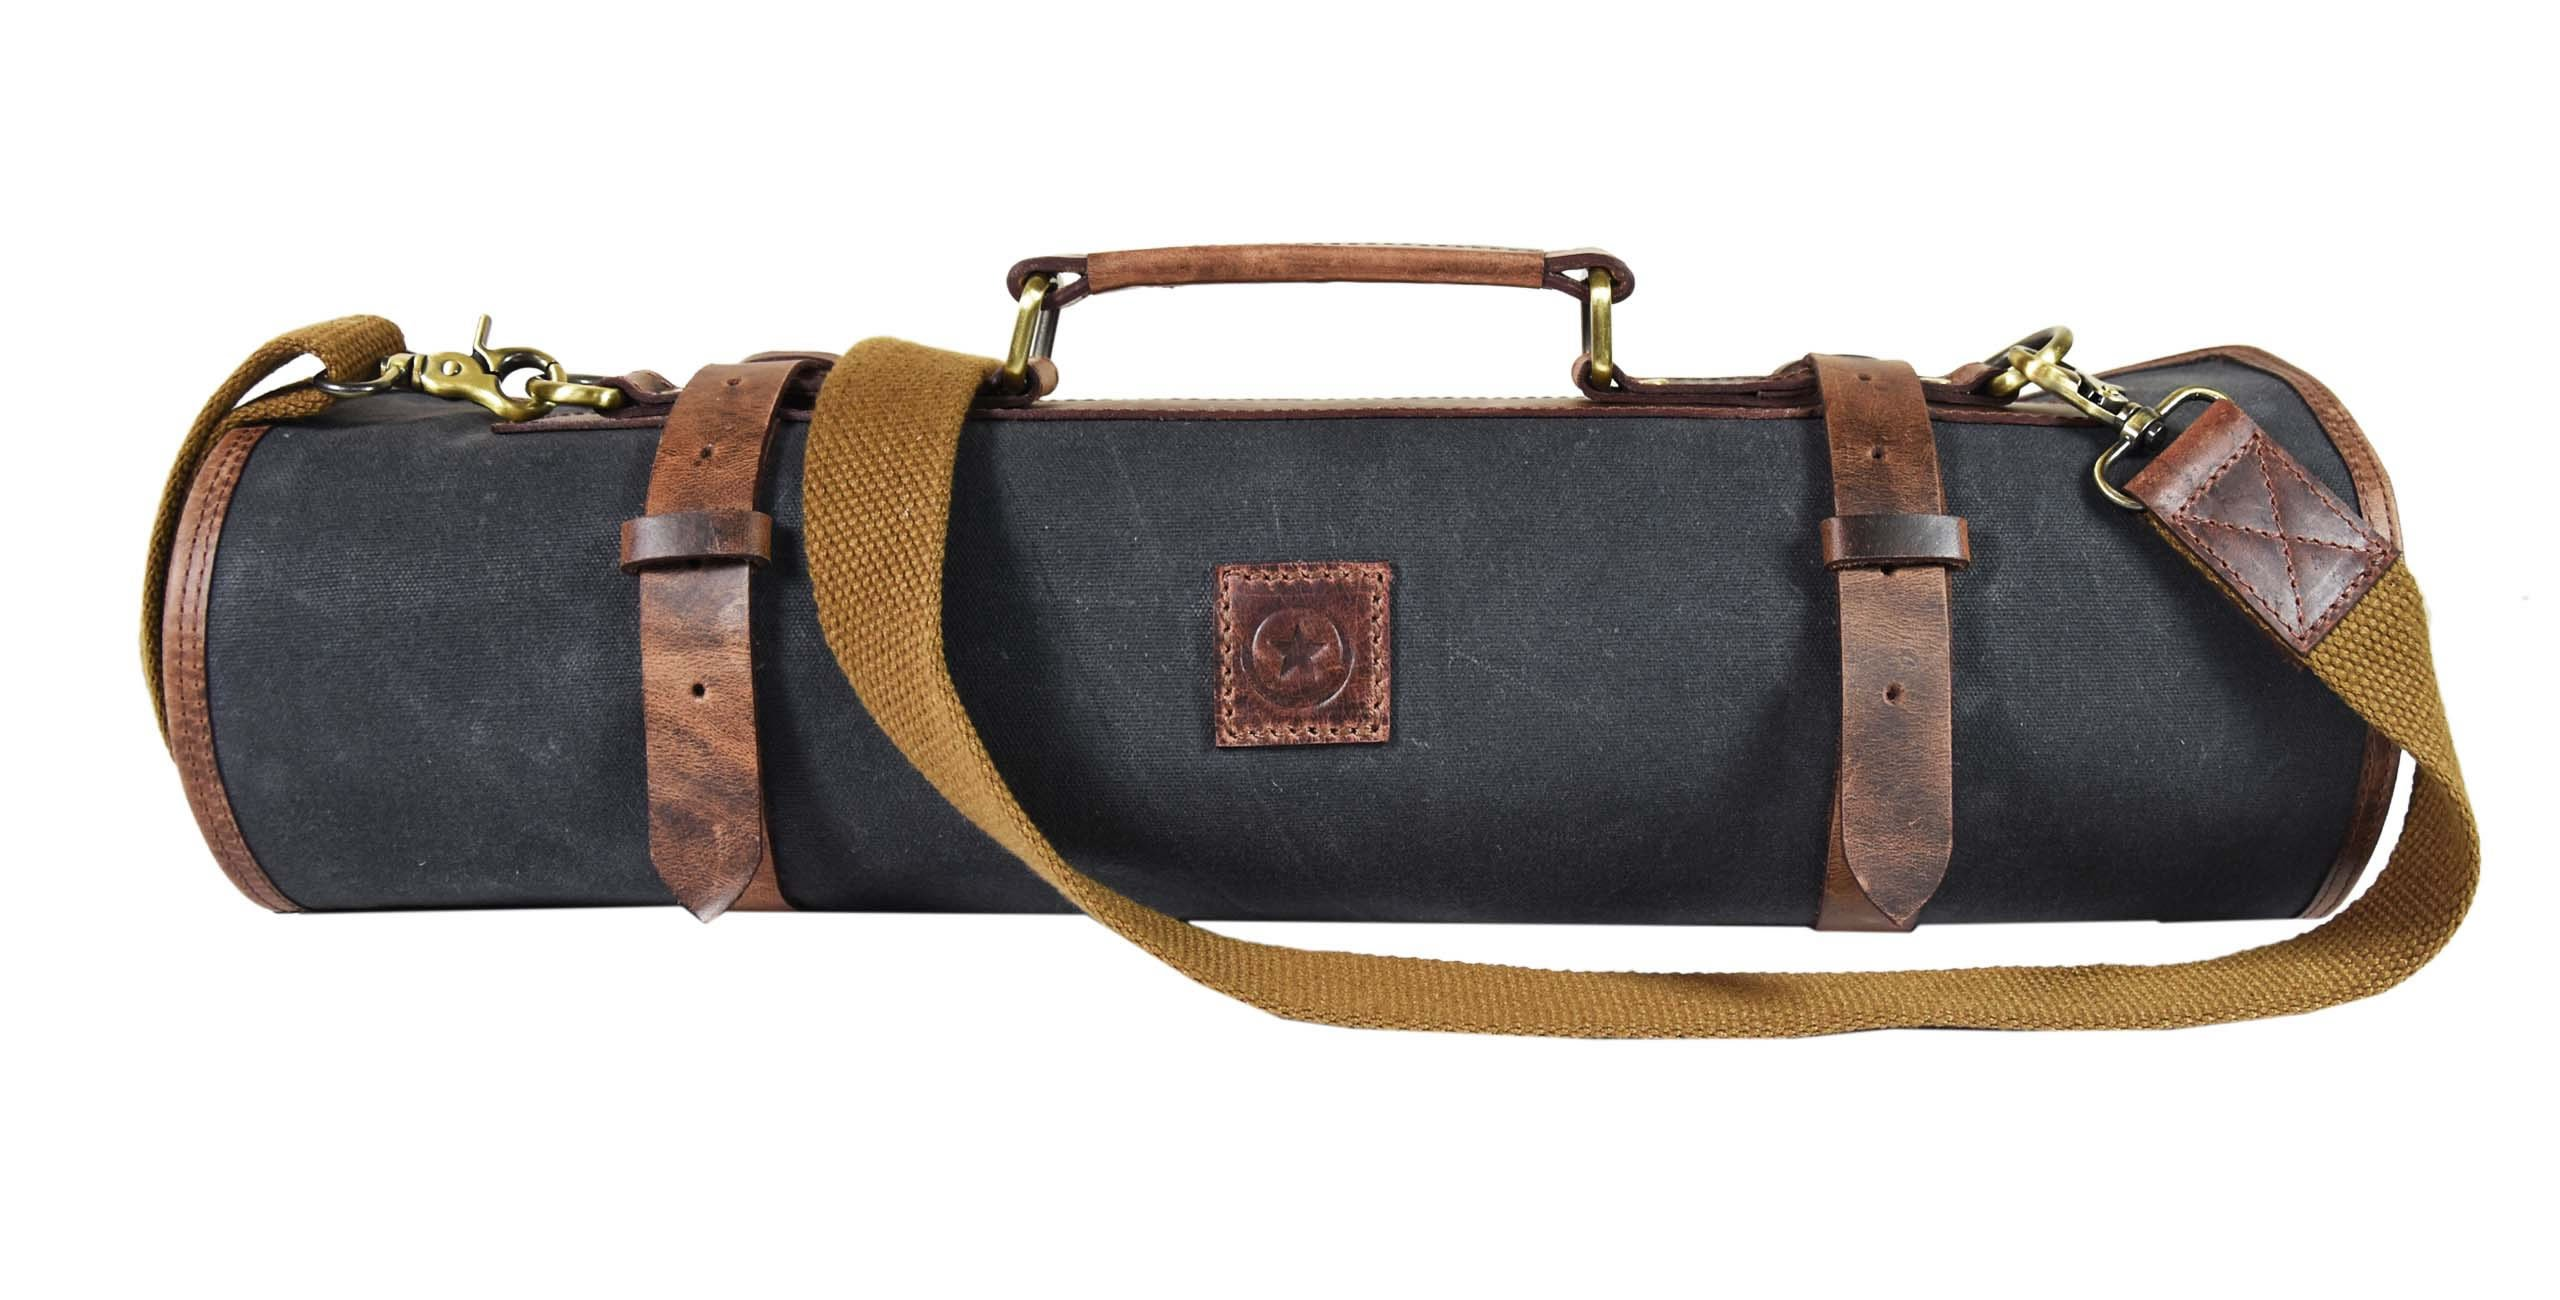 Leather Knife Roll Chef Roll Storage Bag Aaron Leather (Fossil Grey) by Aaron Leather (Image #2)